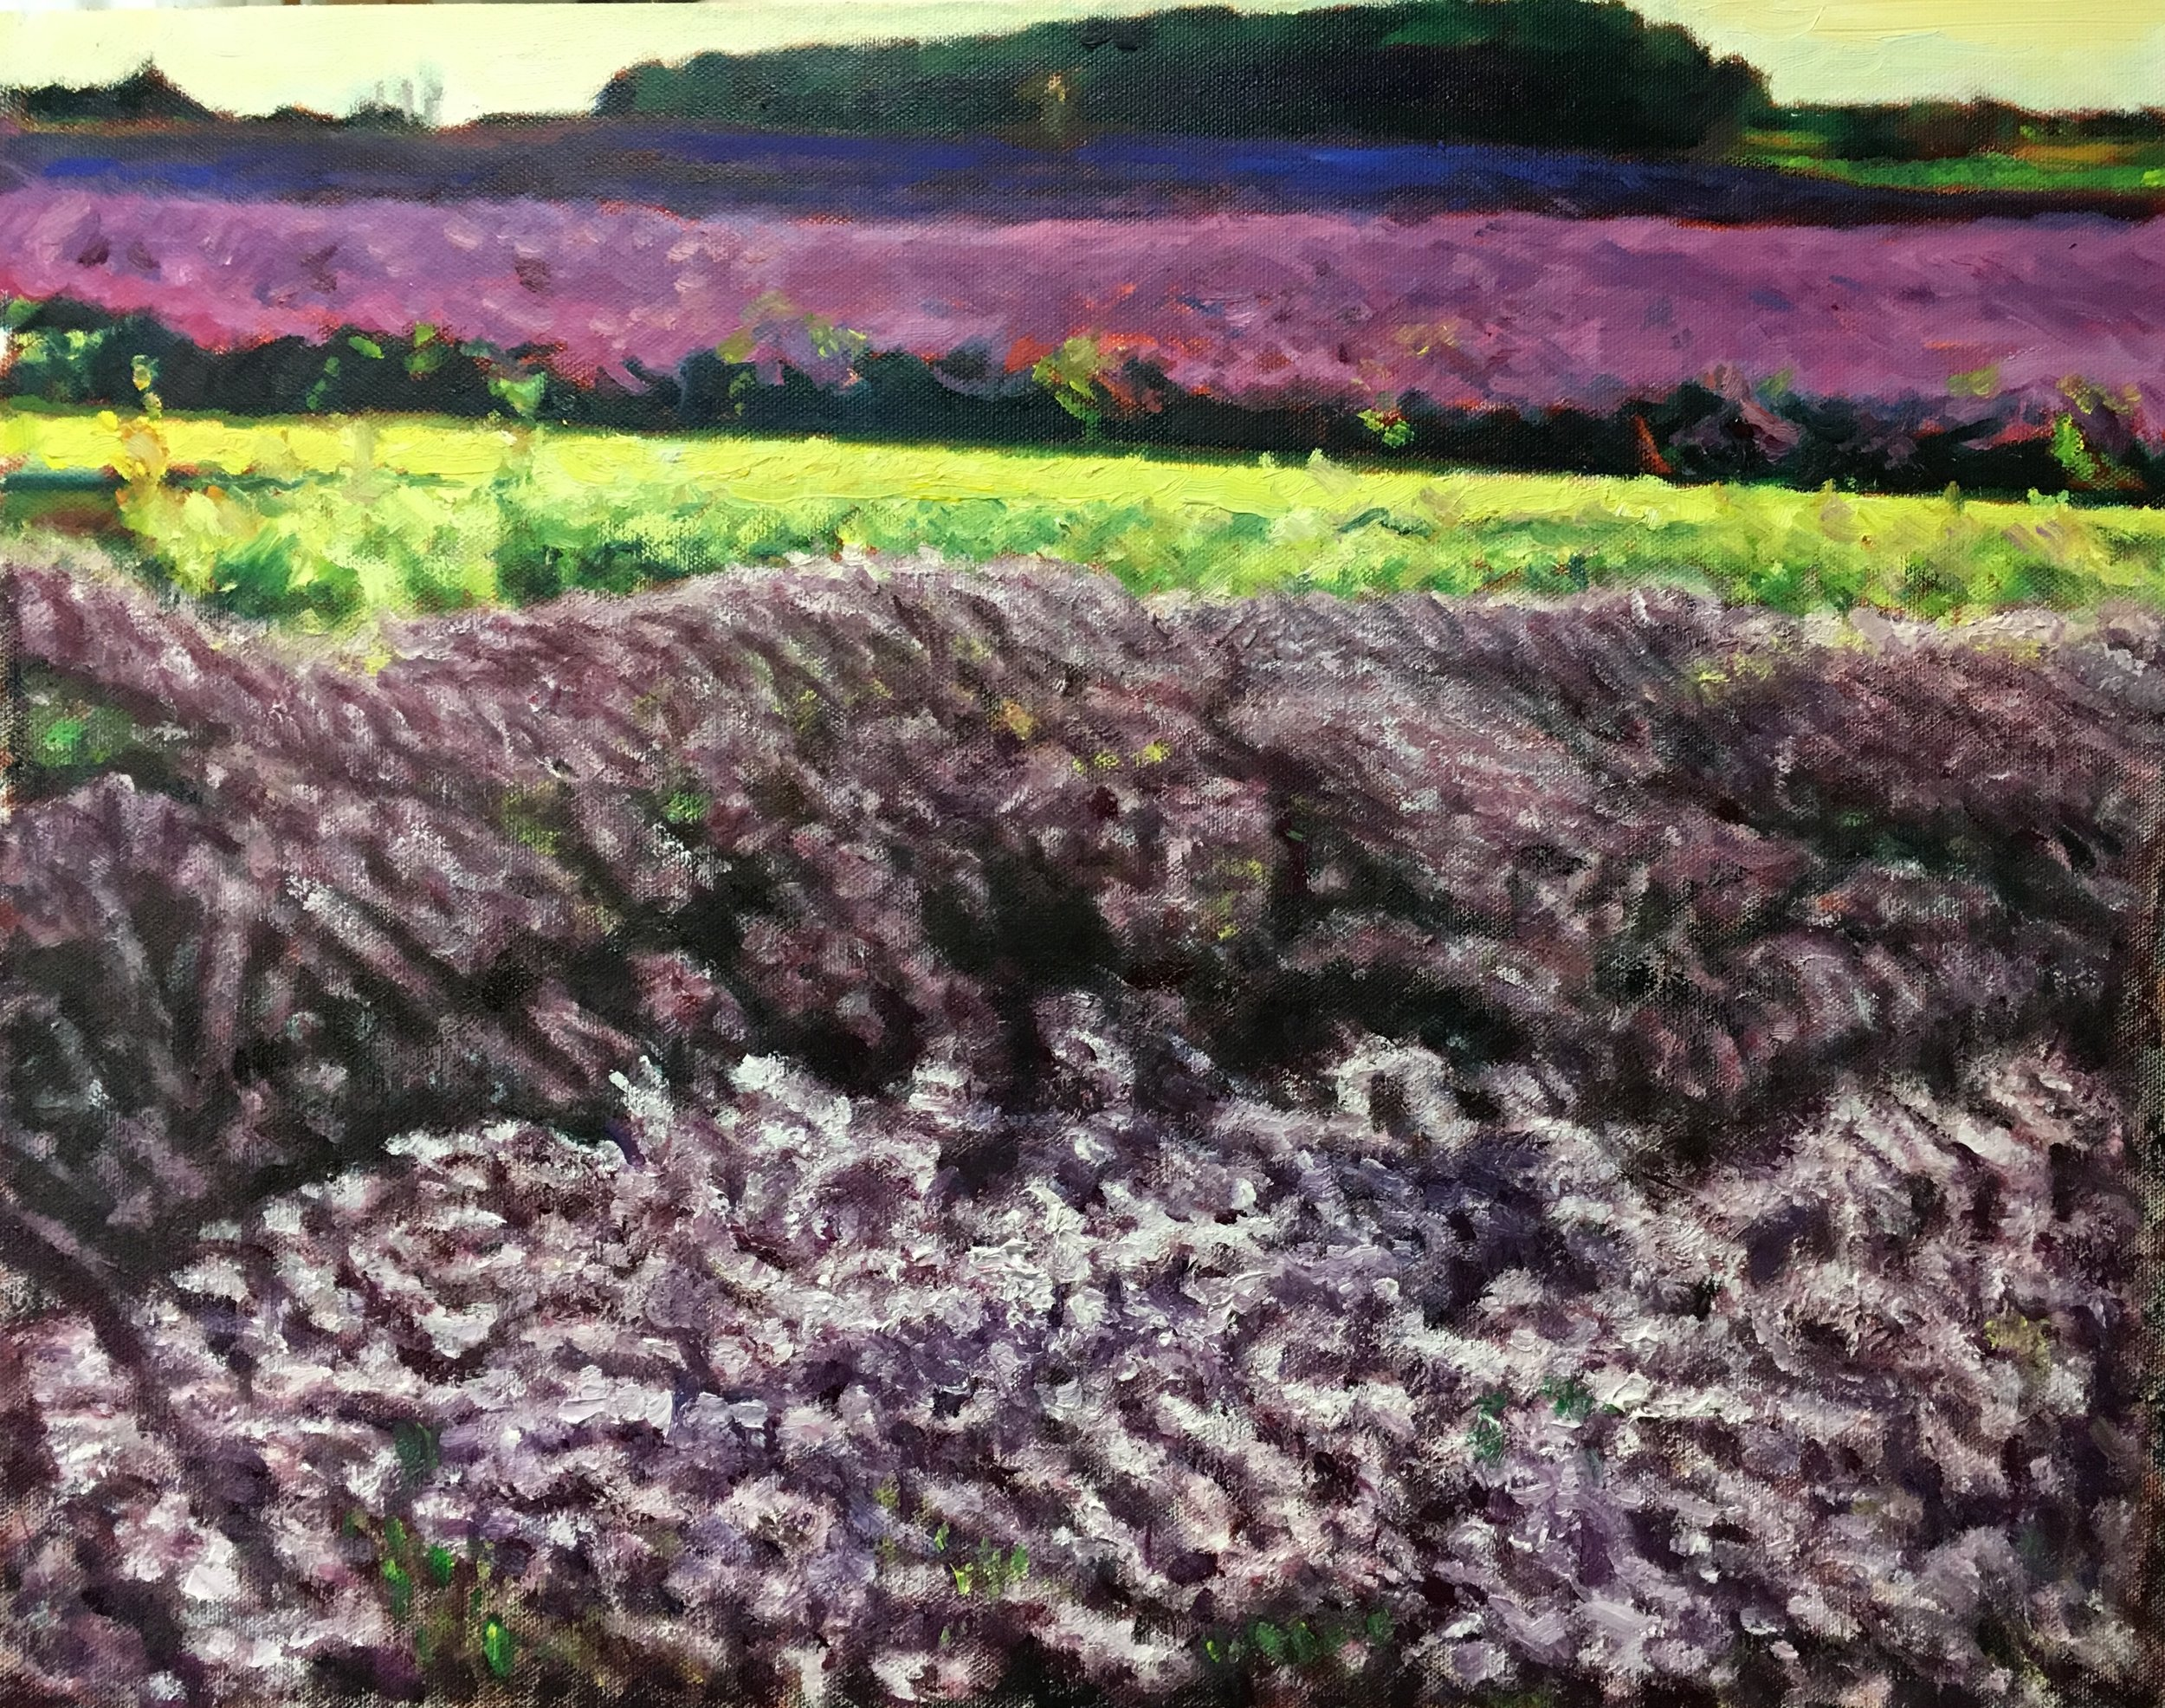 Lavender Fields near Snowshill (20 Feb 2019)